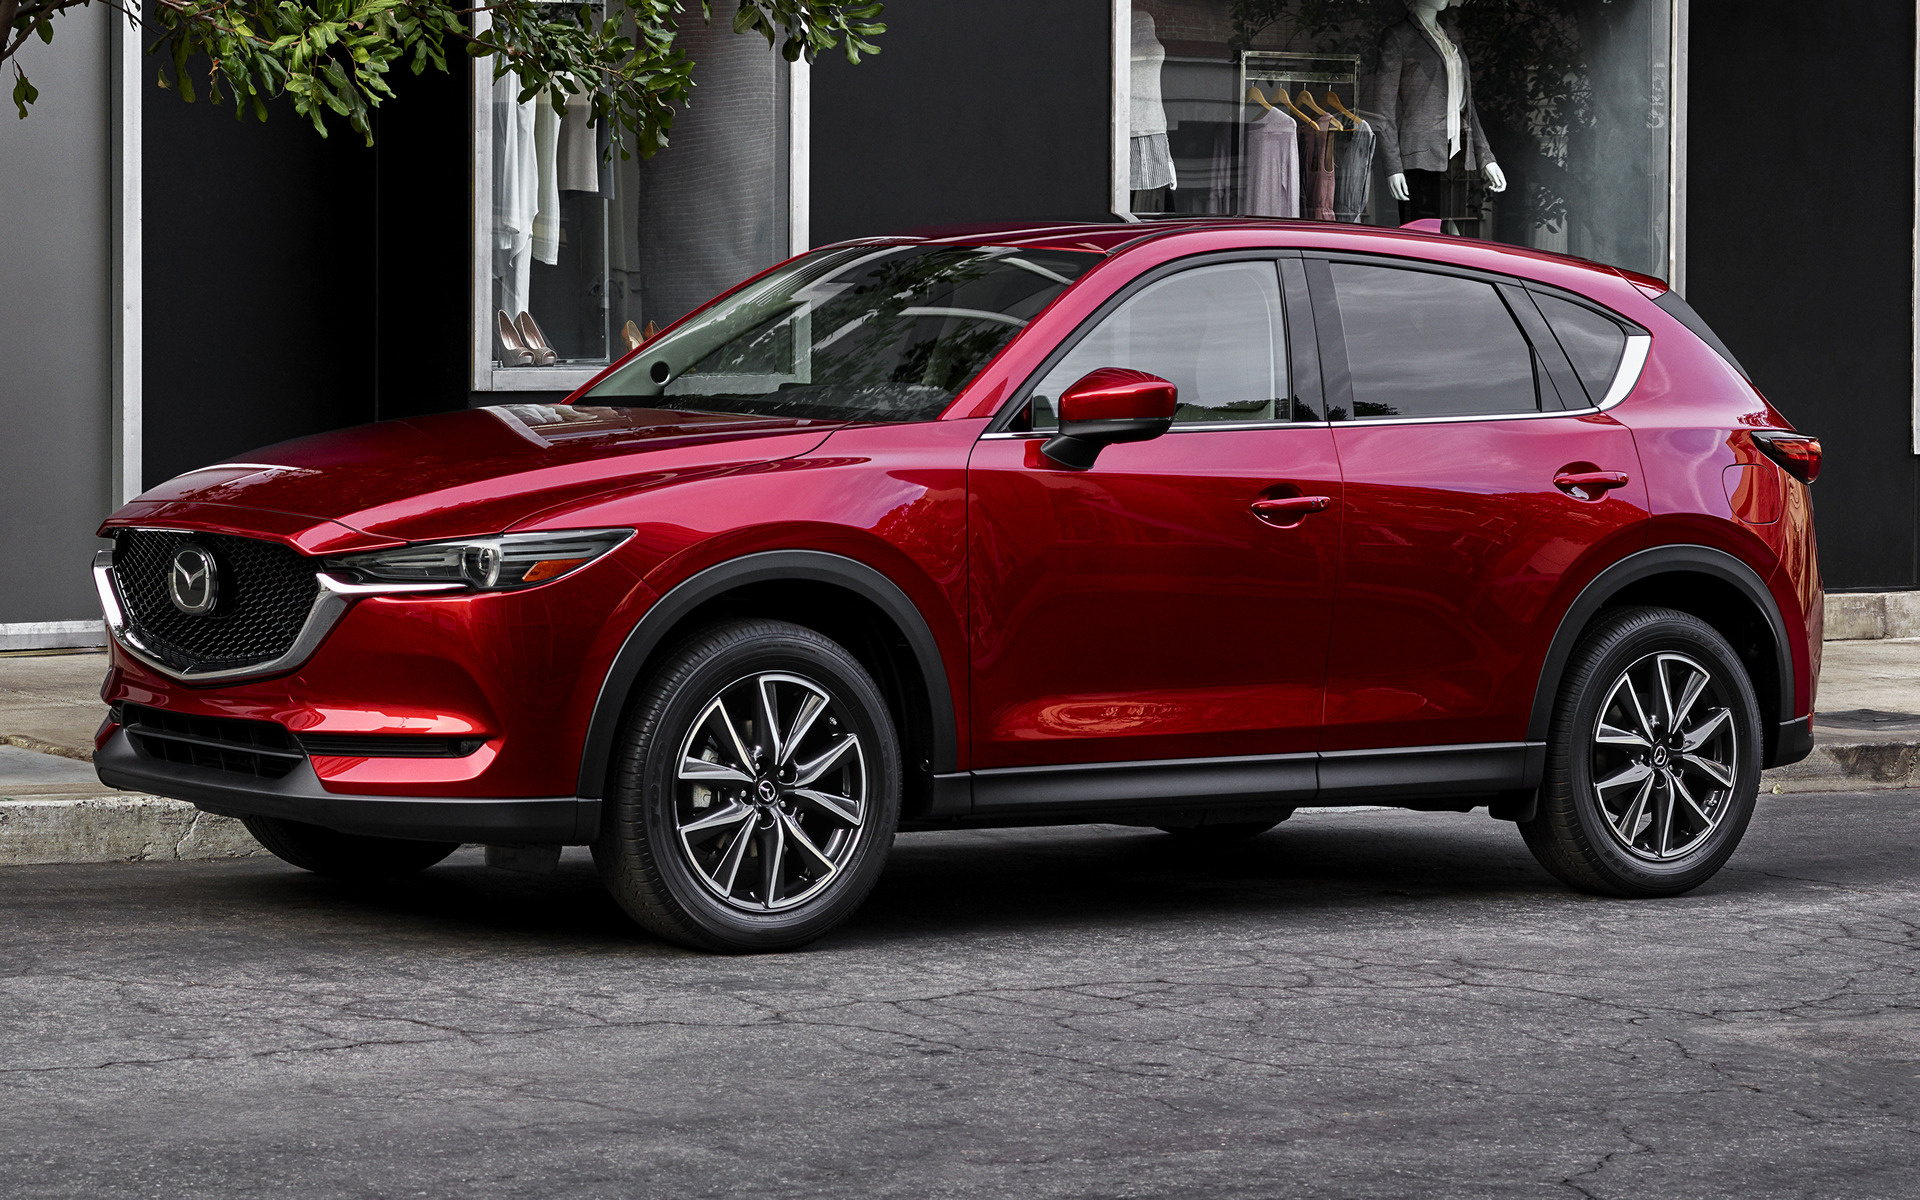 2017 Mazda CX-5 (US) - Wallpapers and HD Images | Car Pixel